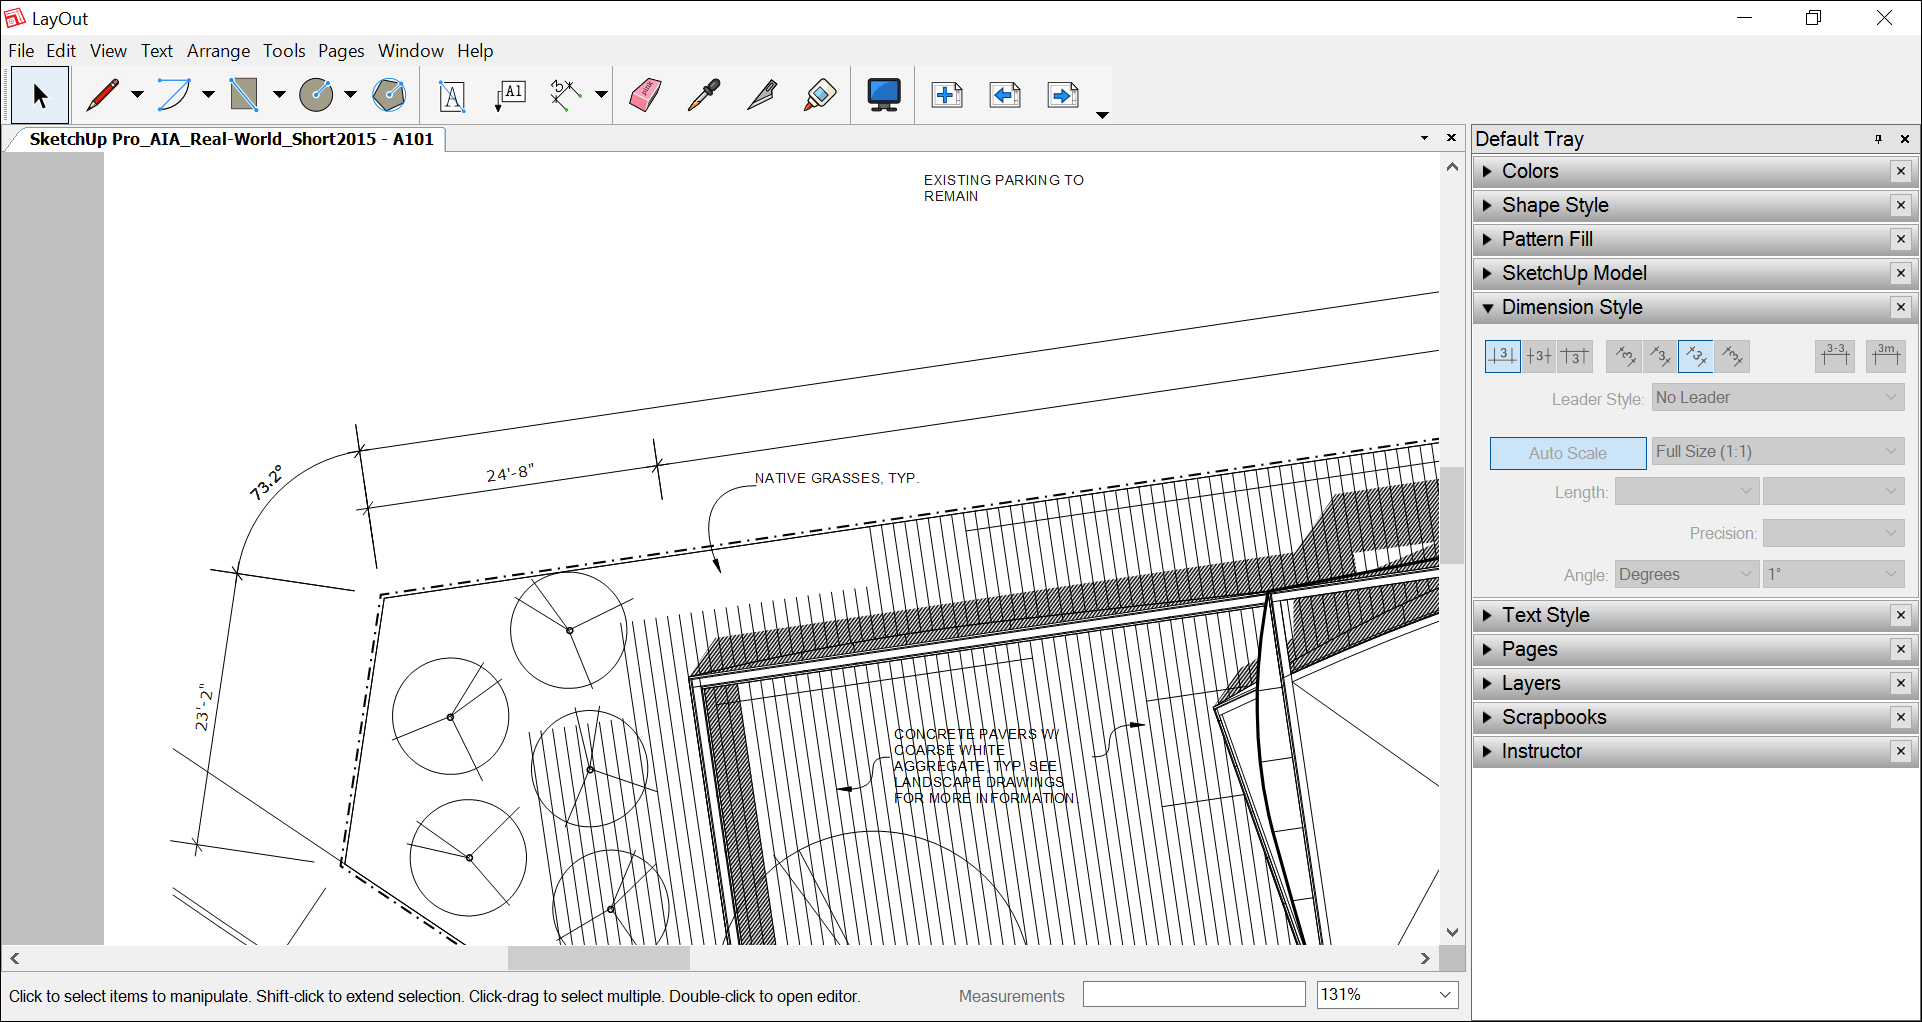 best tool to draw diagrams 91 honda crx stereo wiring diagram marking dimensions | sketchup help